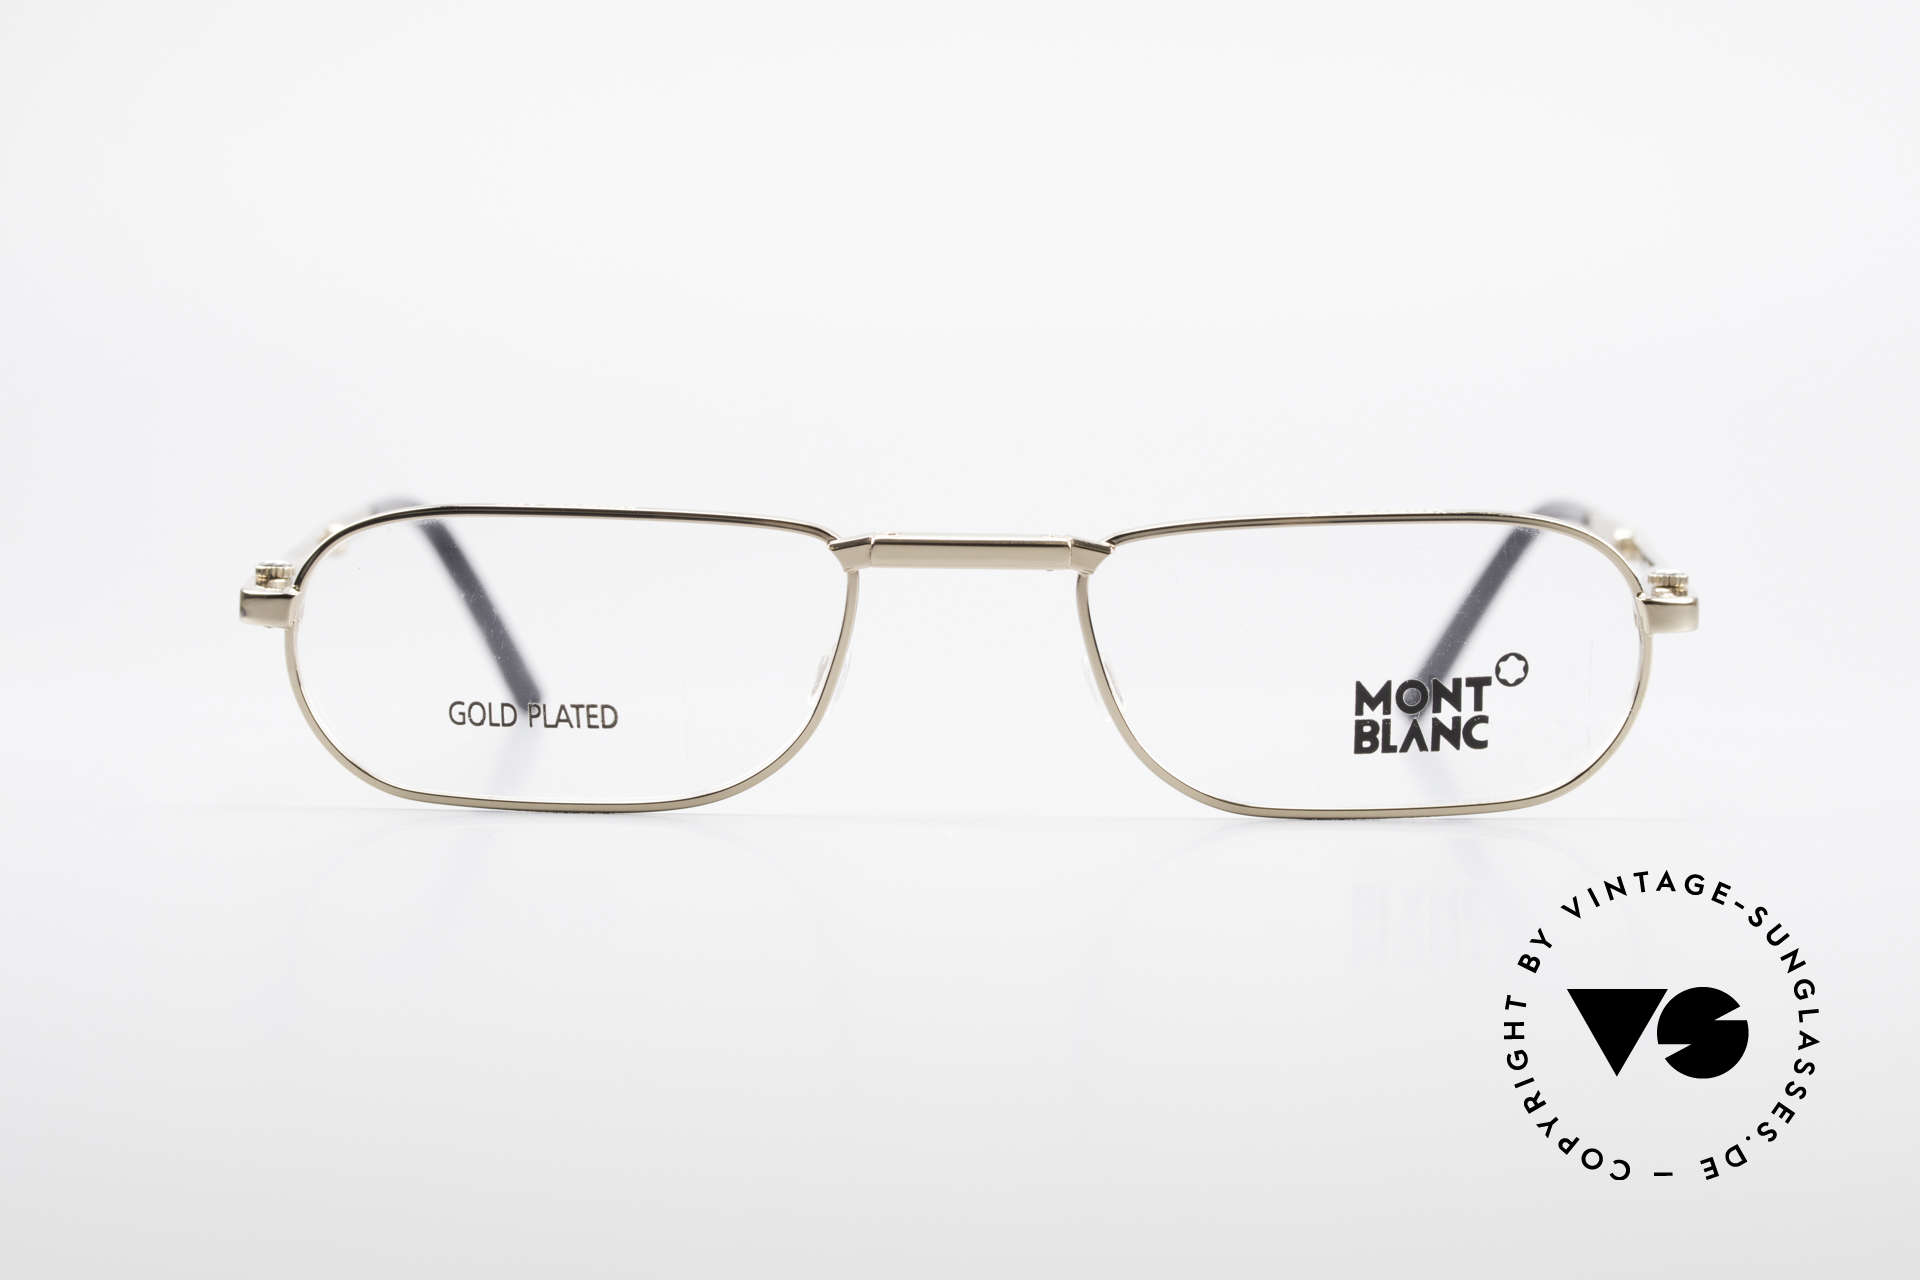 Montblanc MB30 Folding Gold Plated Luxury Eyeglasses, best quality (gold-plated) & flexible spring hinges, Made for Men